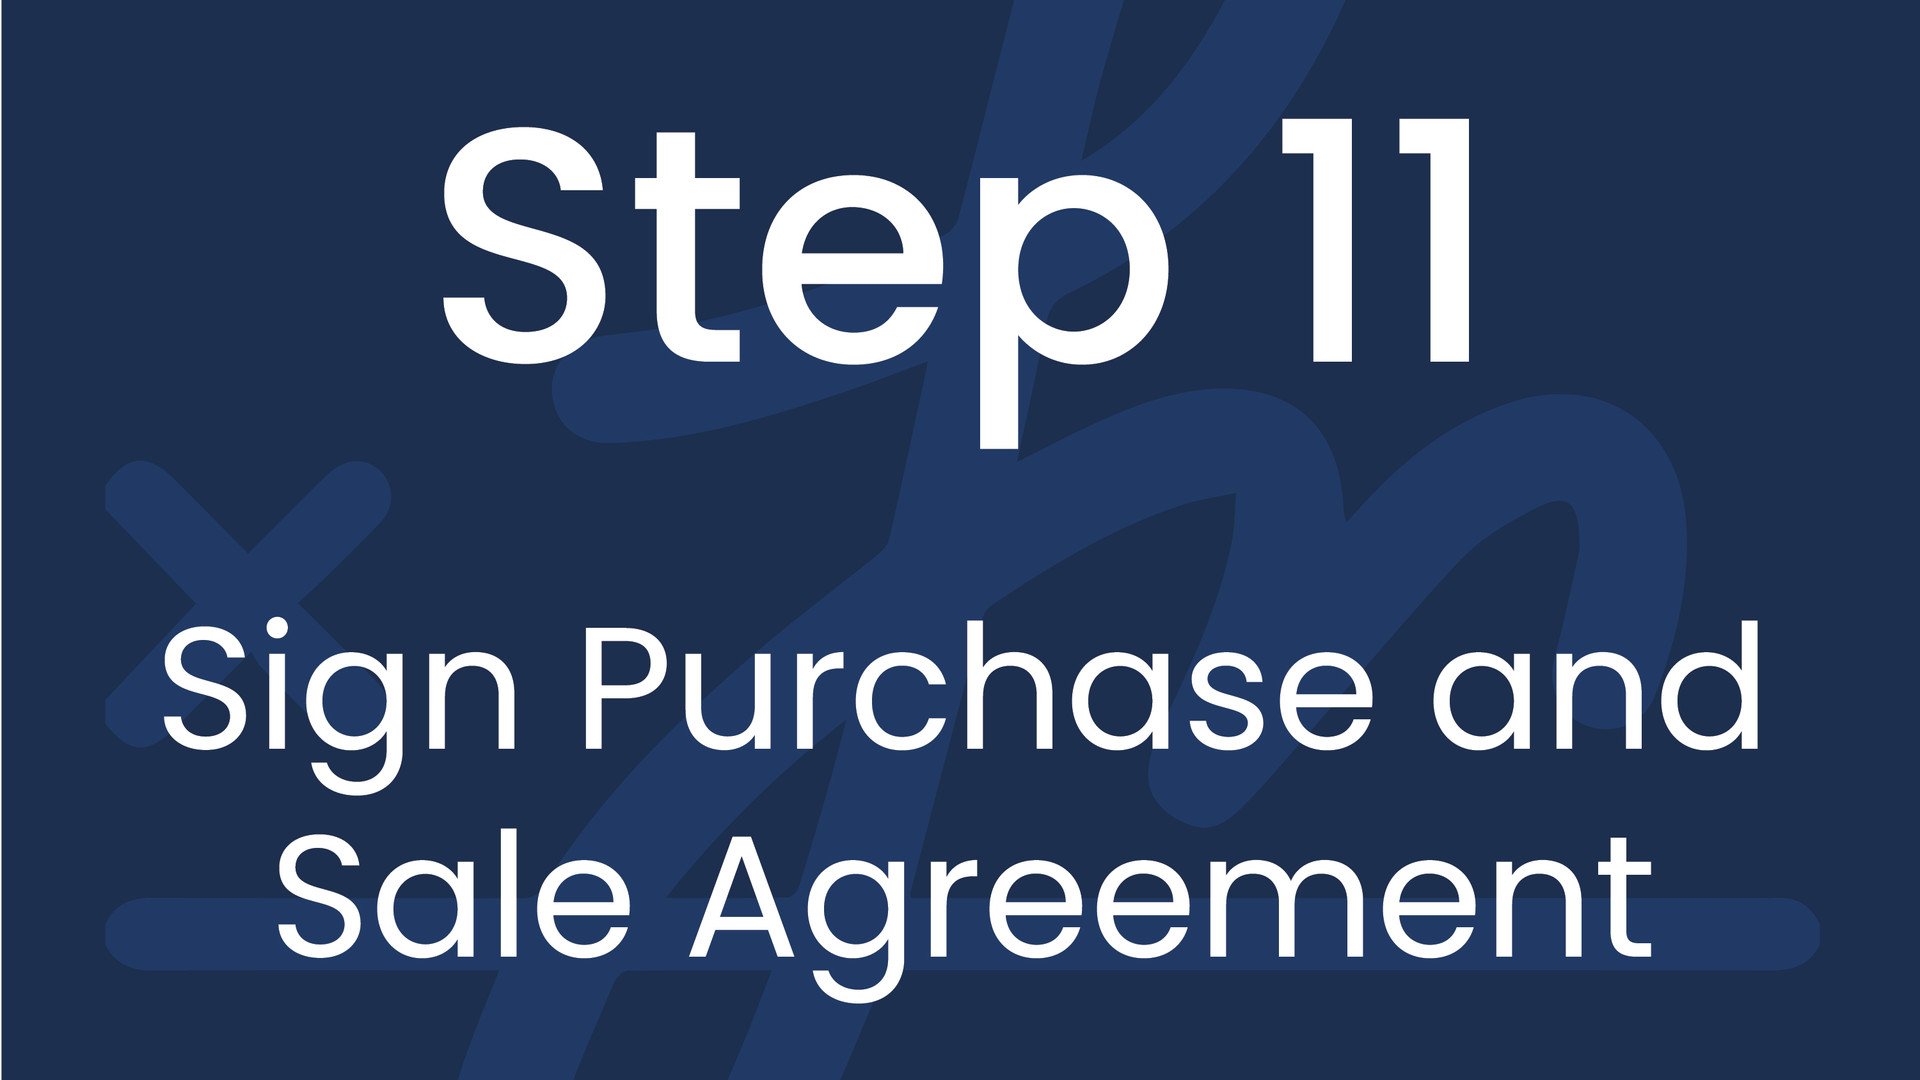 Step 11: Sign Purchase and Sale Agreement